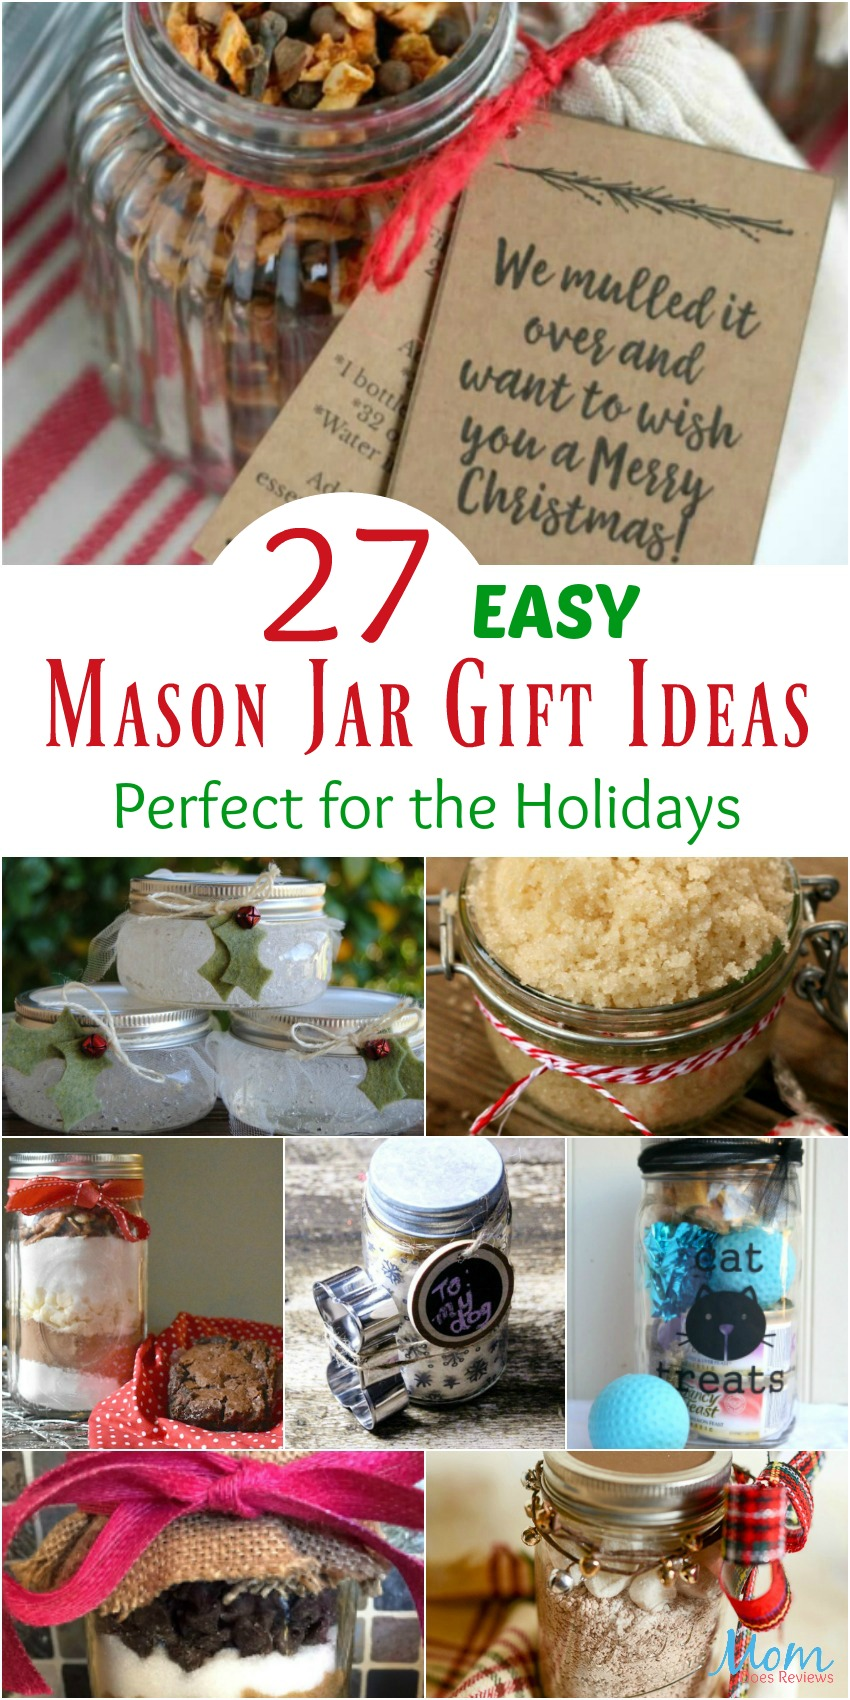 27 Easy Mason Jar Gift Ideas Perfect for the Holidays #gifts #christmas #masonjargifts #merrychristmas